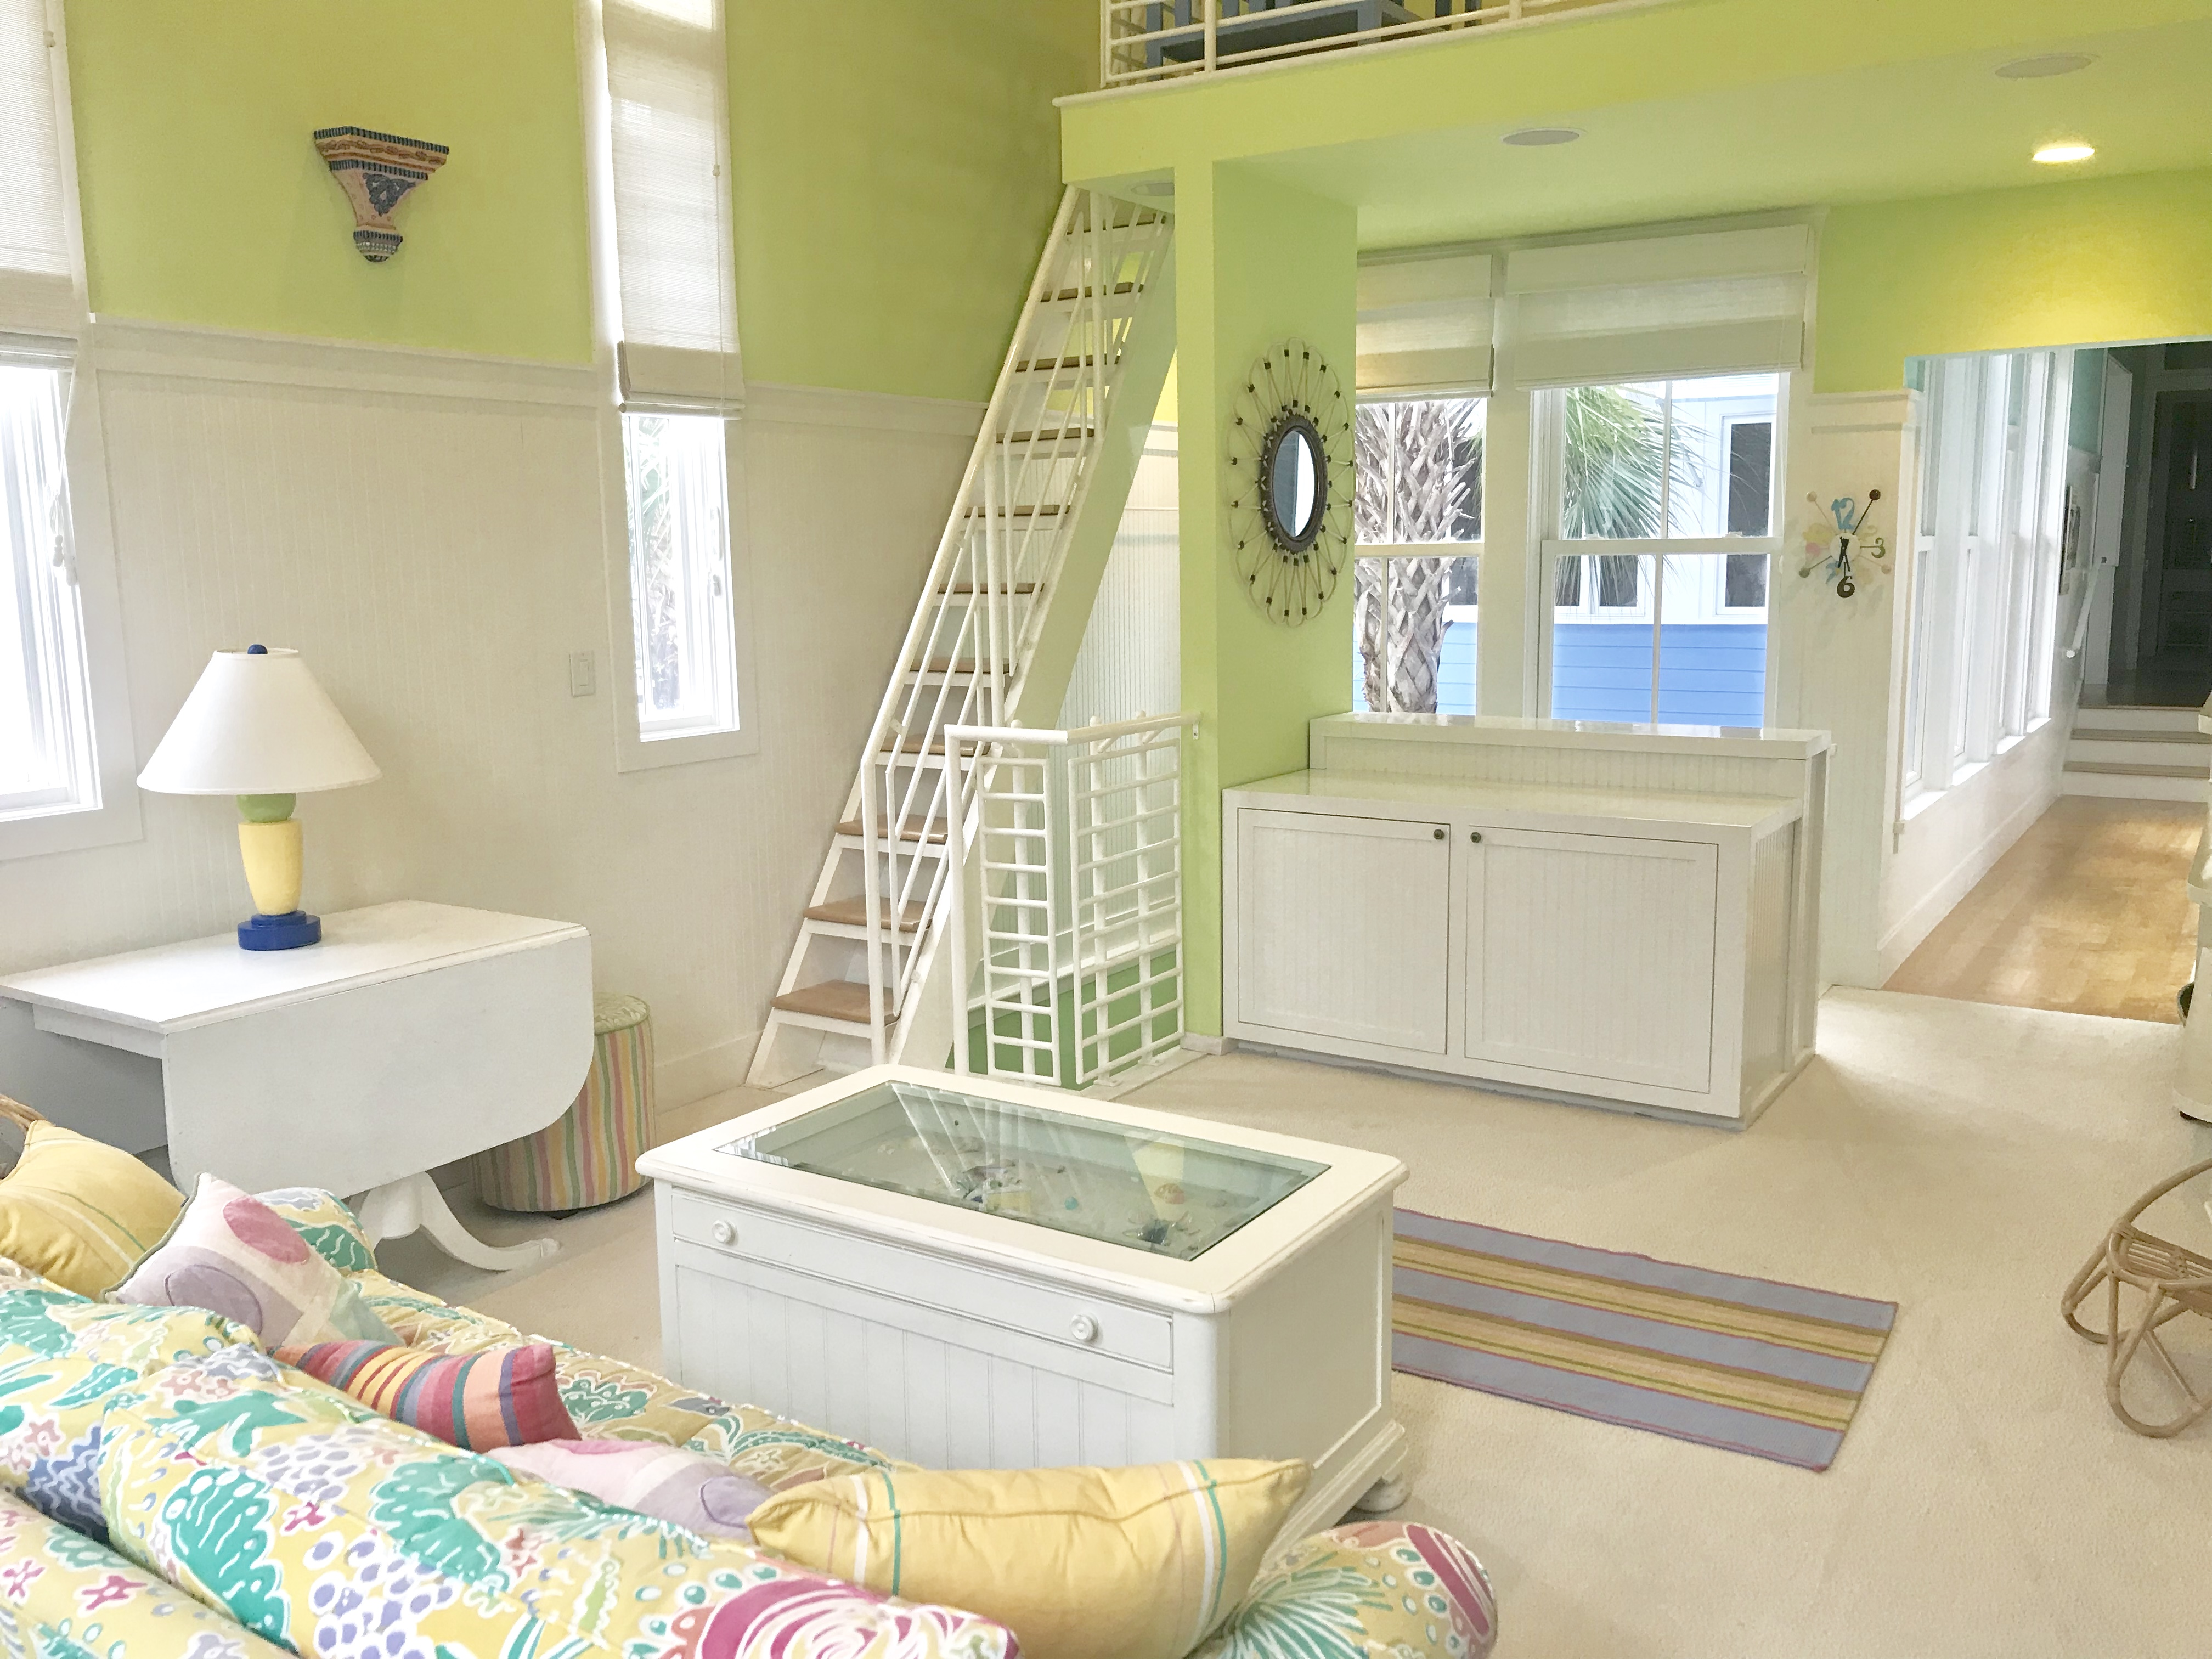 The north wing of the home has a second living area, with a queen sleeper sofa, bunk room and a loft that has a full sized day bed.